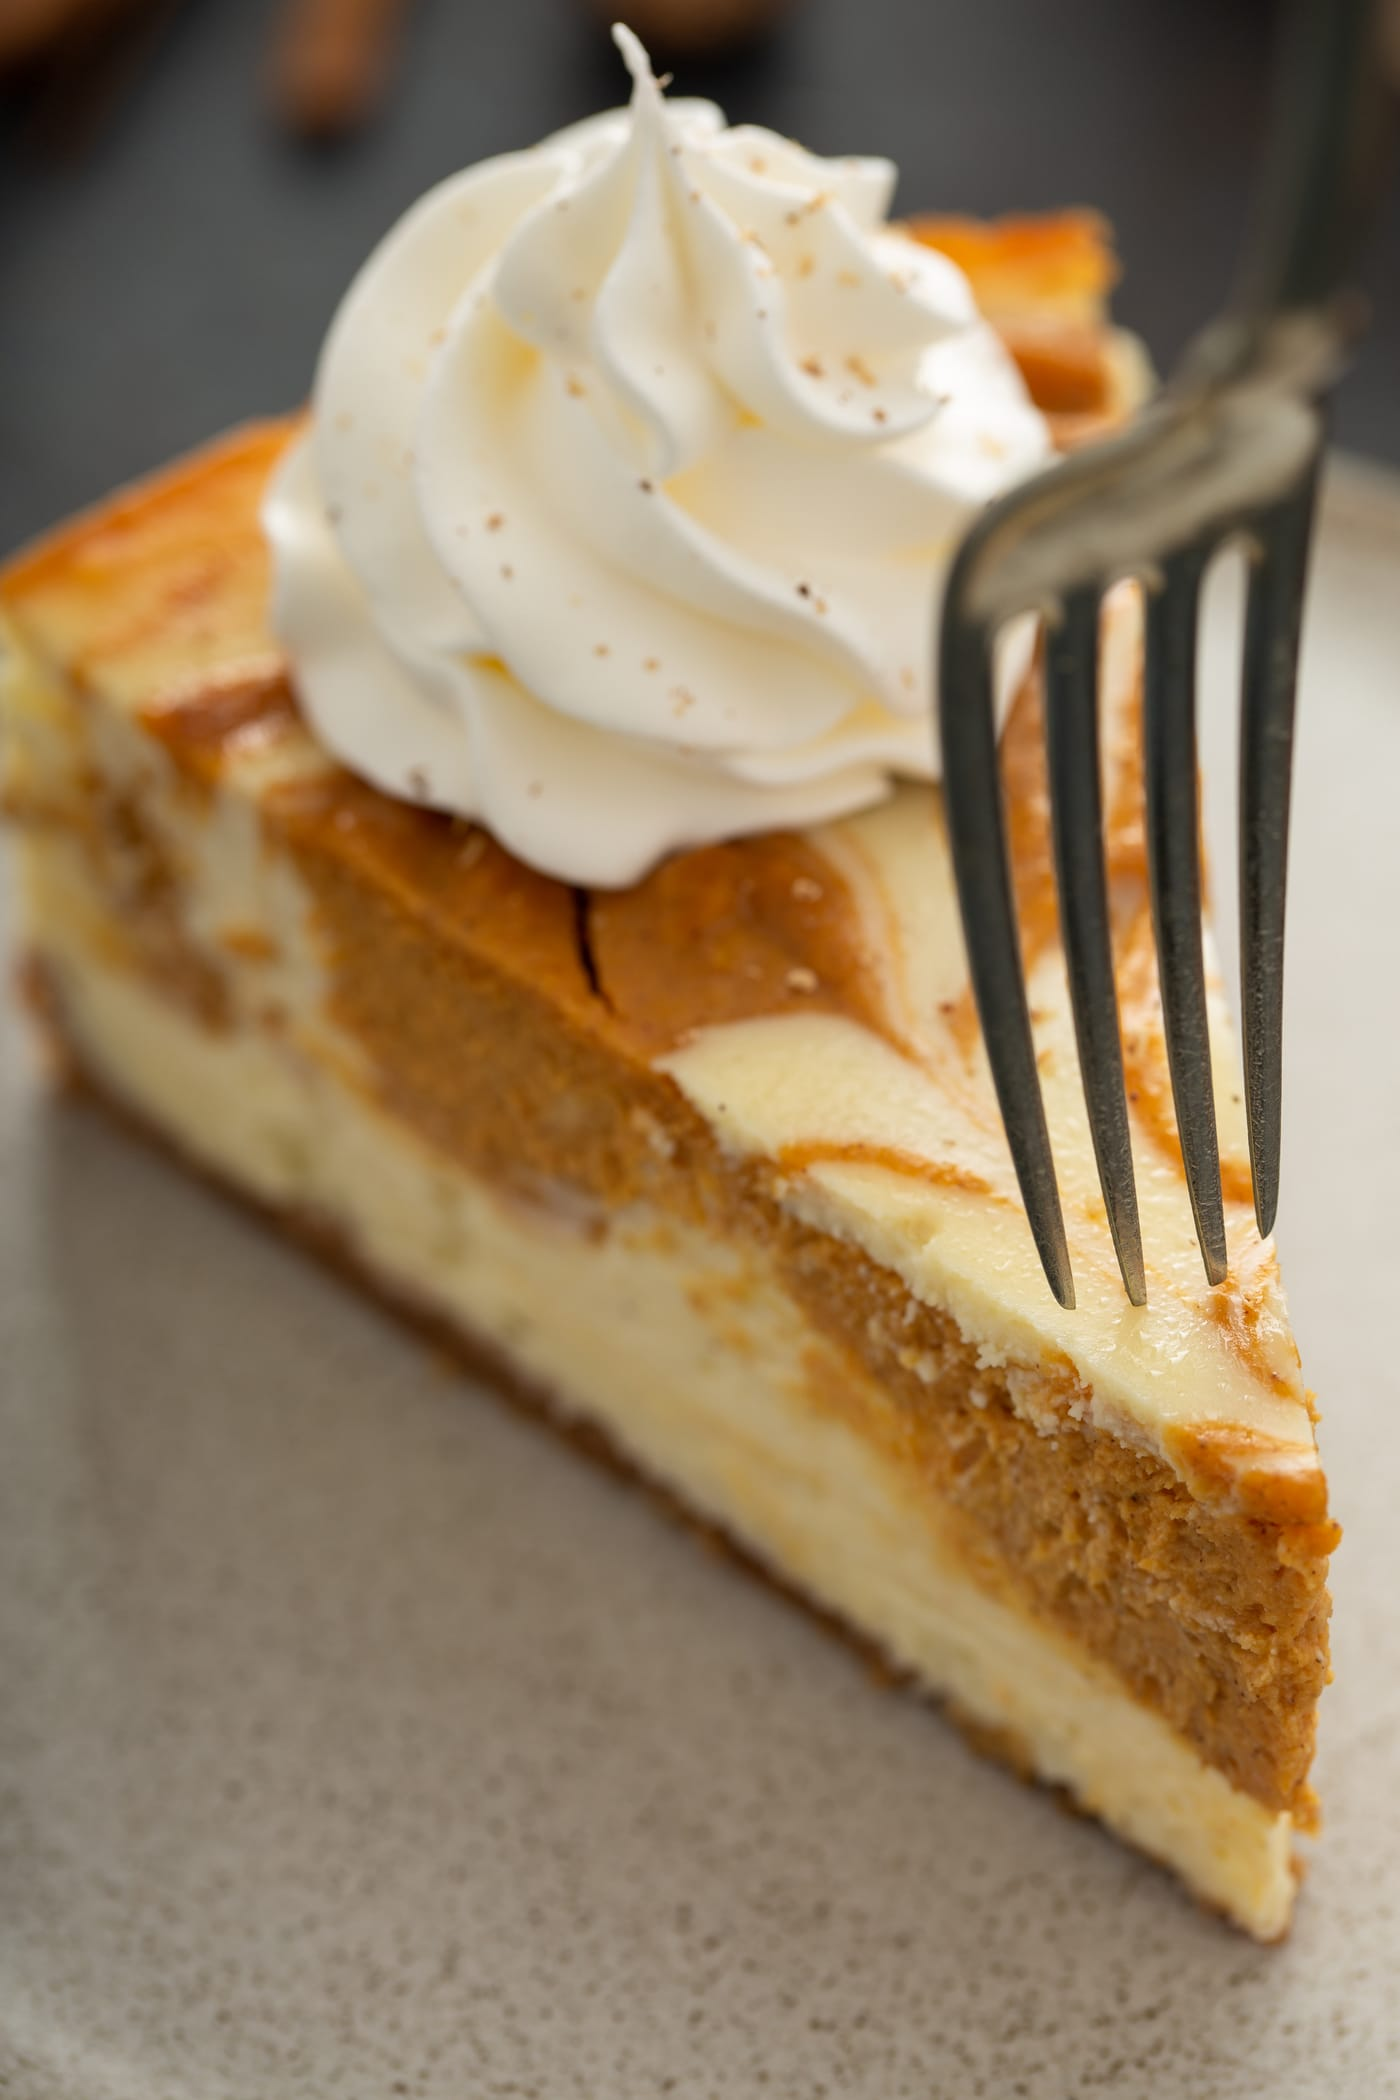 A slice of swirled pumpkin cheesecake topped with a dollop of whipped cream. A fork is piercing the piece of cheesecake.